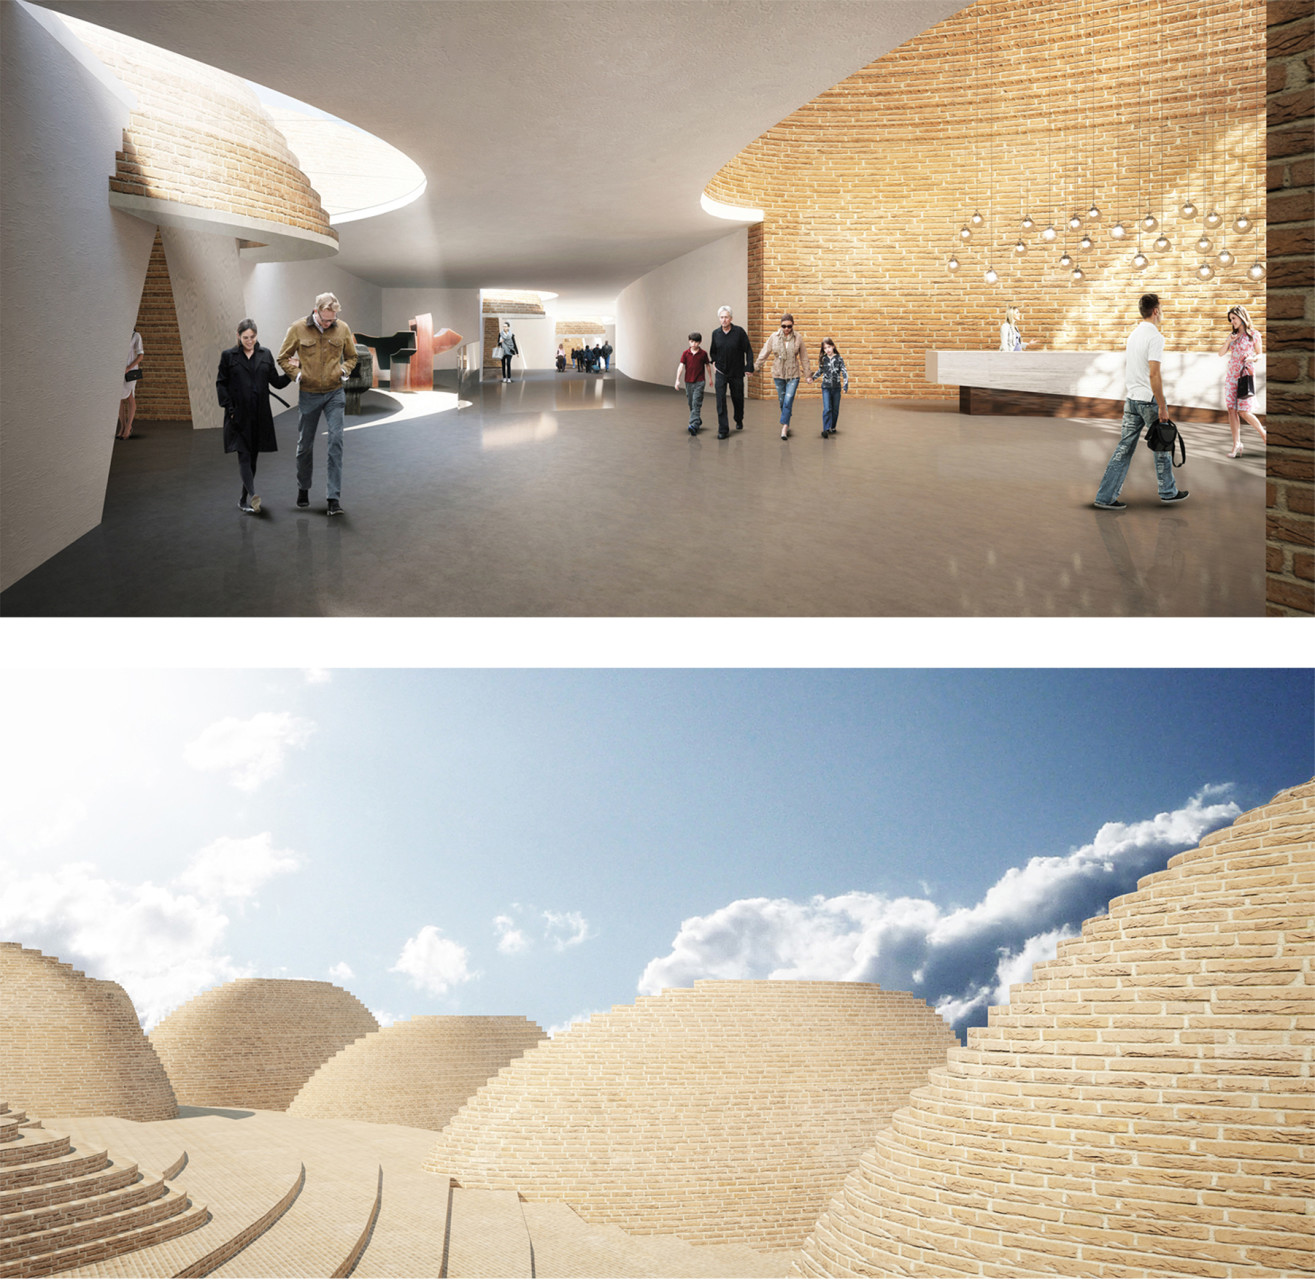 Wisp-Architects-Bamiyan-Cultural-Center-Competition-Render 4-5